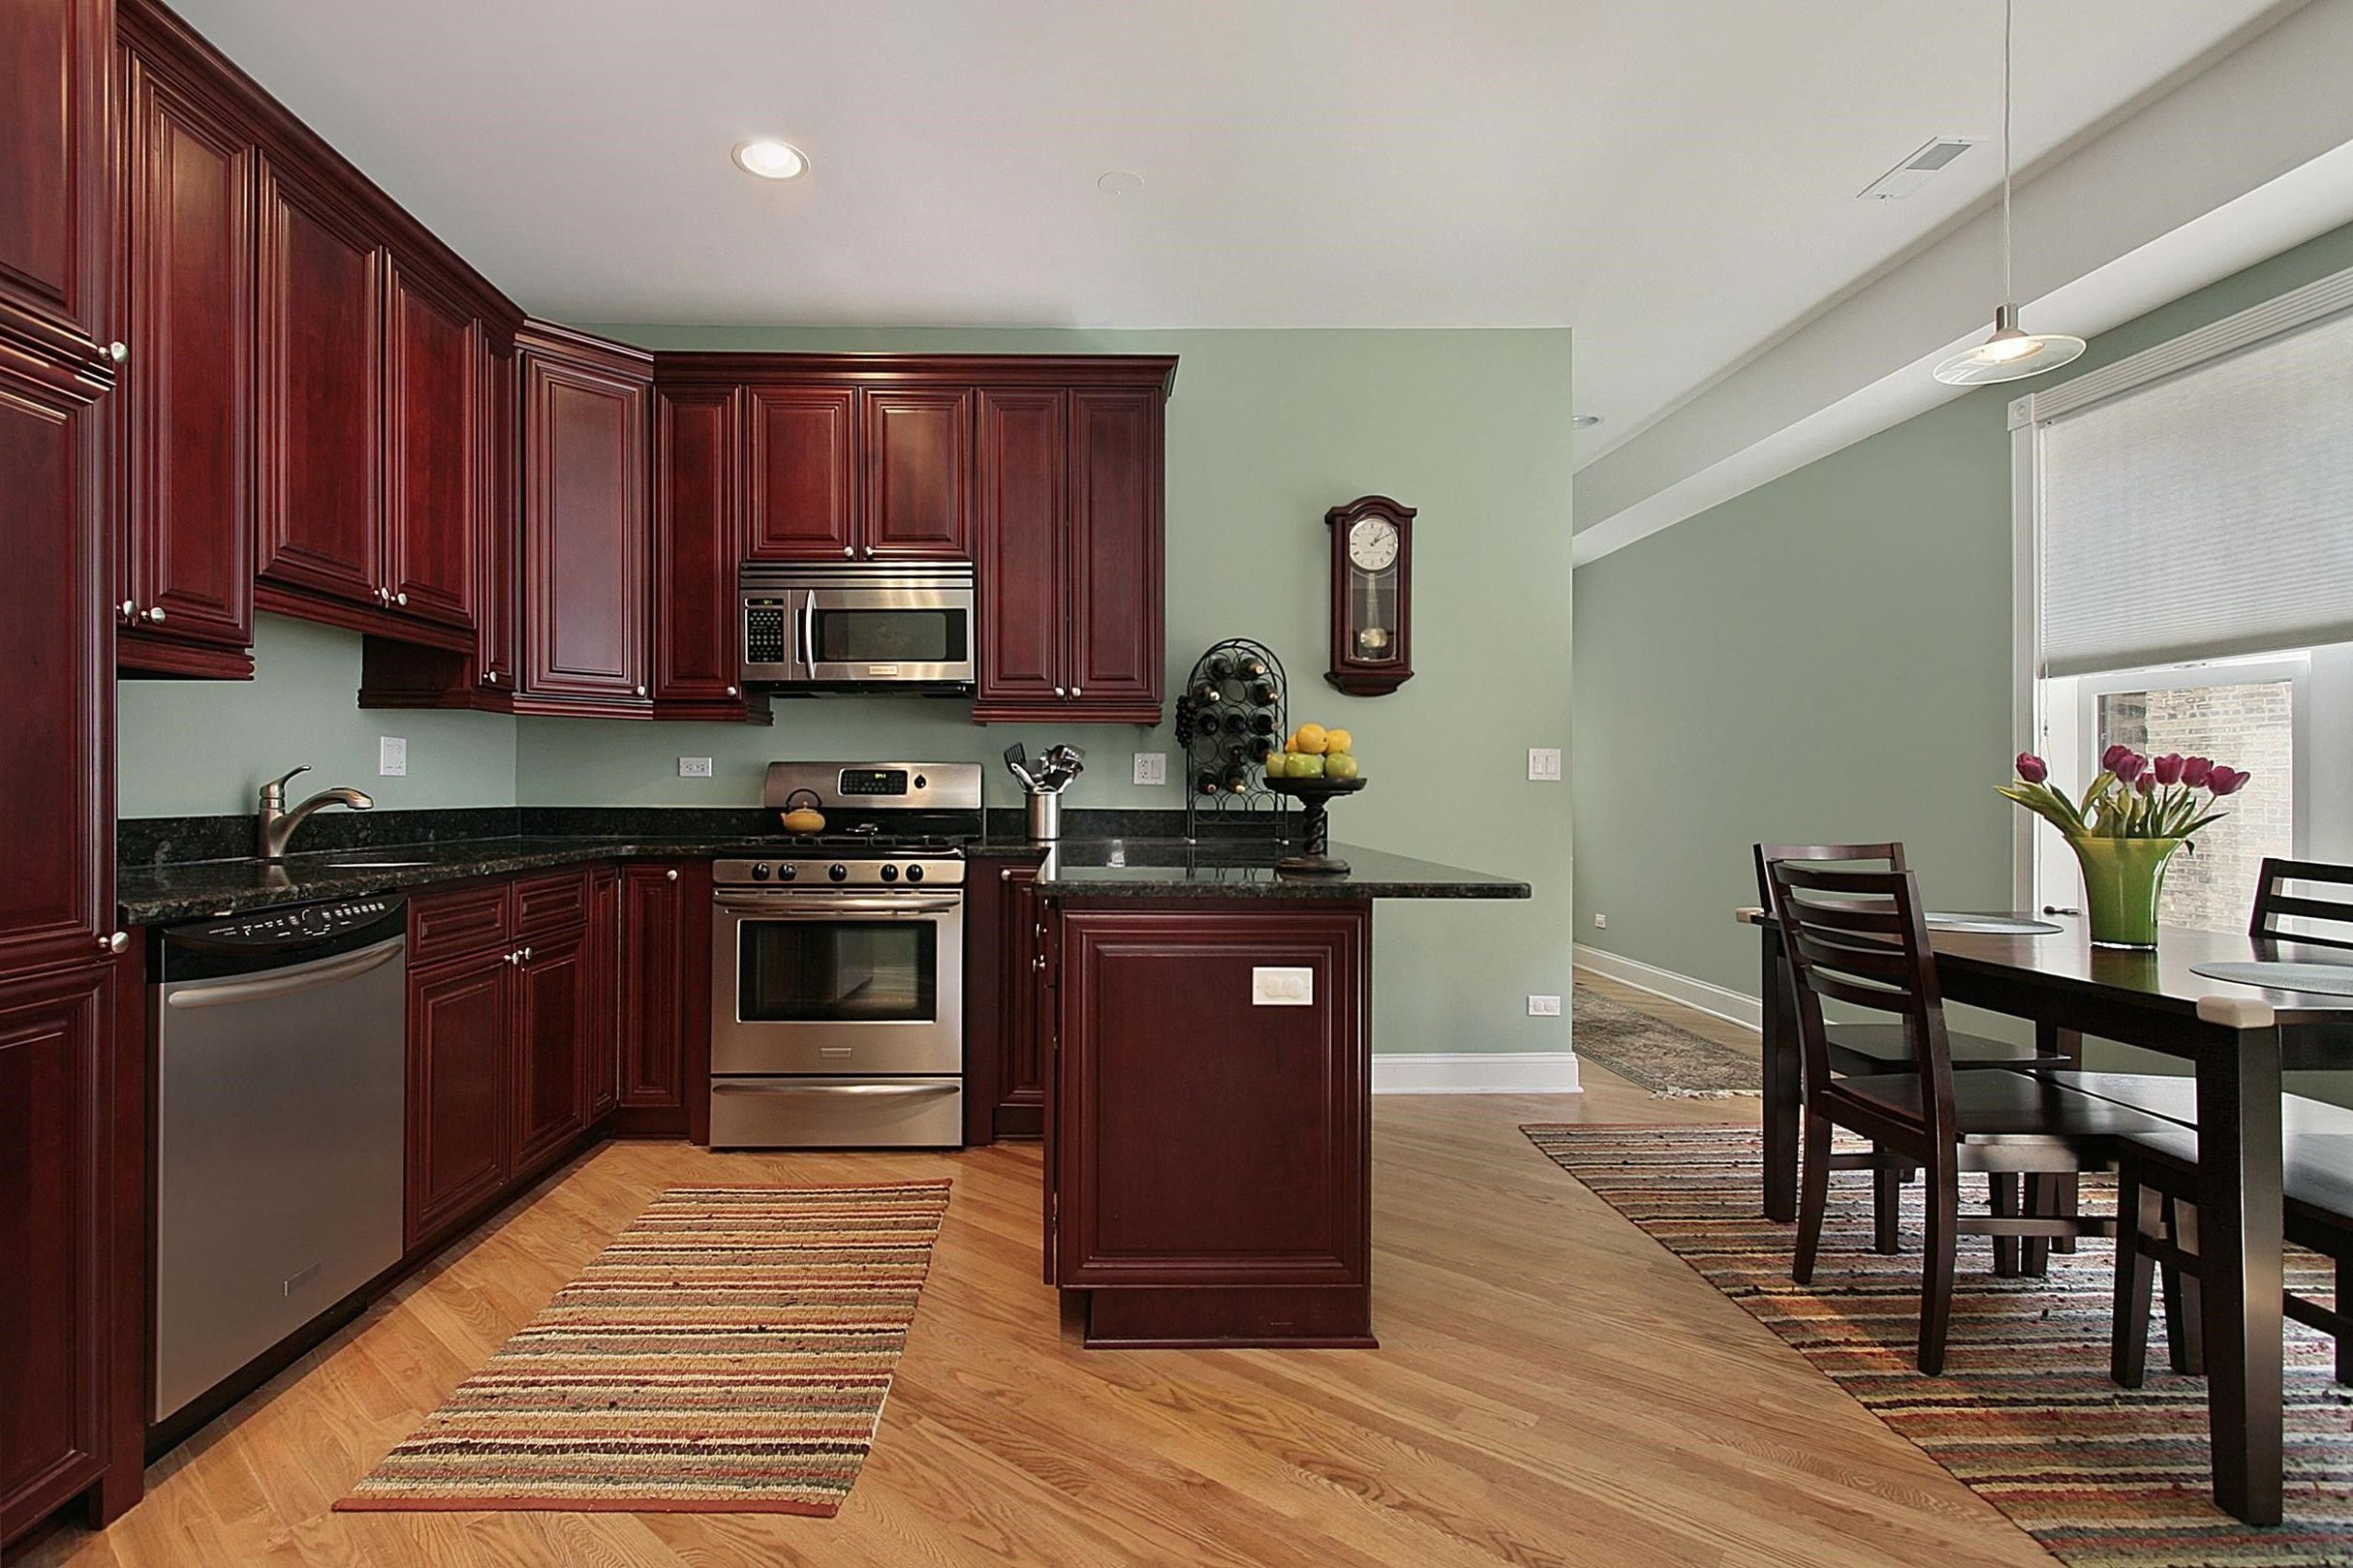 Light Sage Green Paint Colors In Kitchen With Dark Mahogany  - Kitchen Wall Paint Colors With Cherry Cabinets